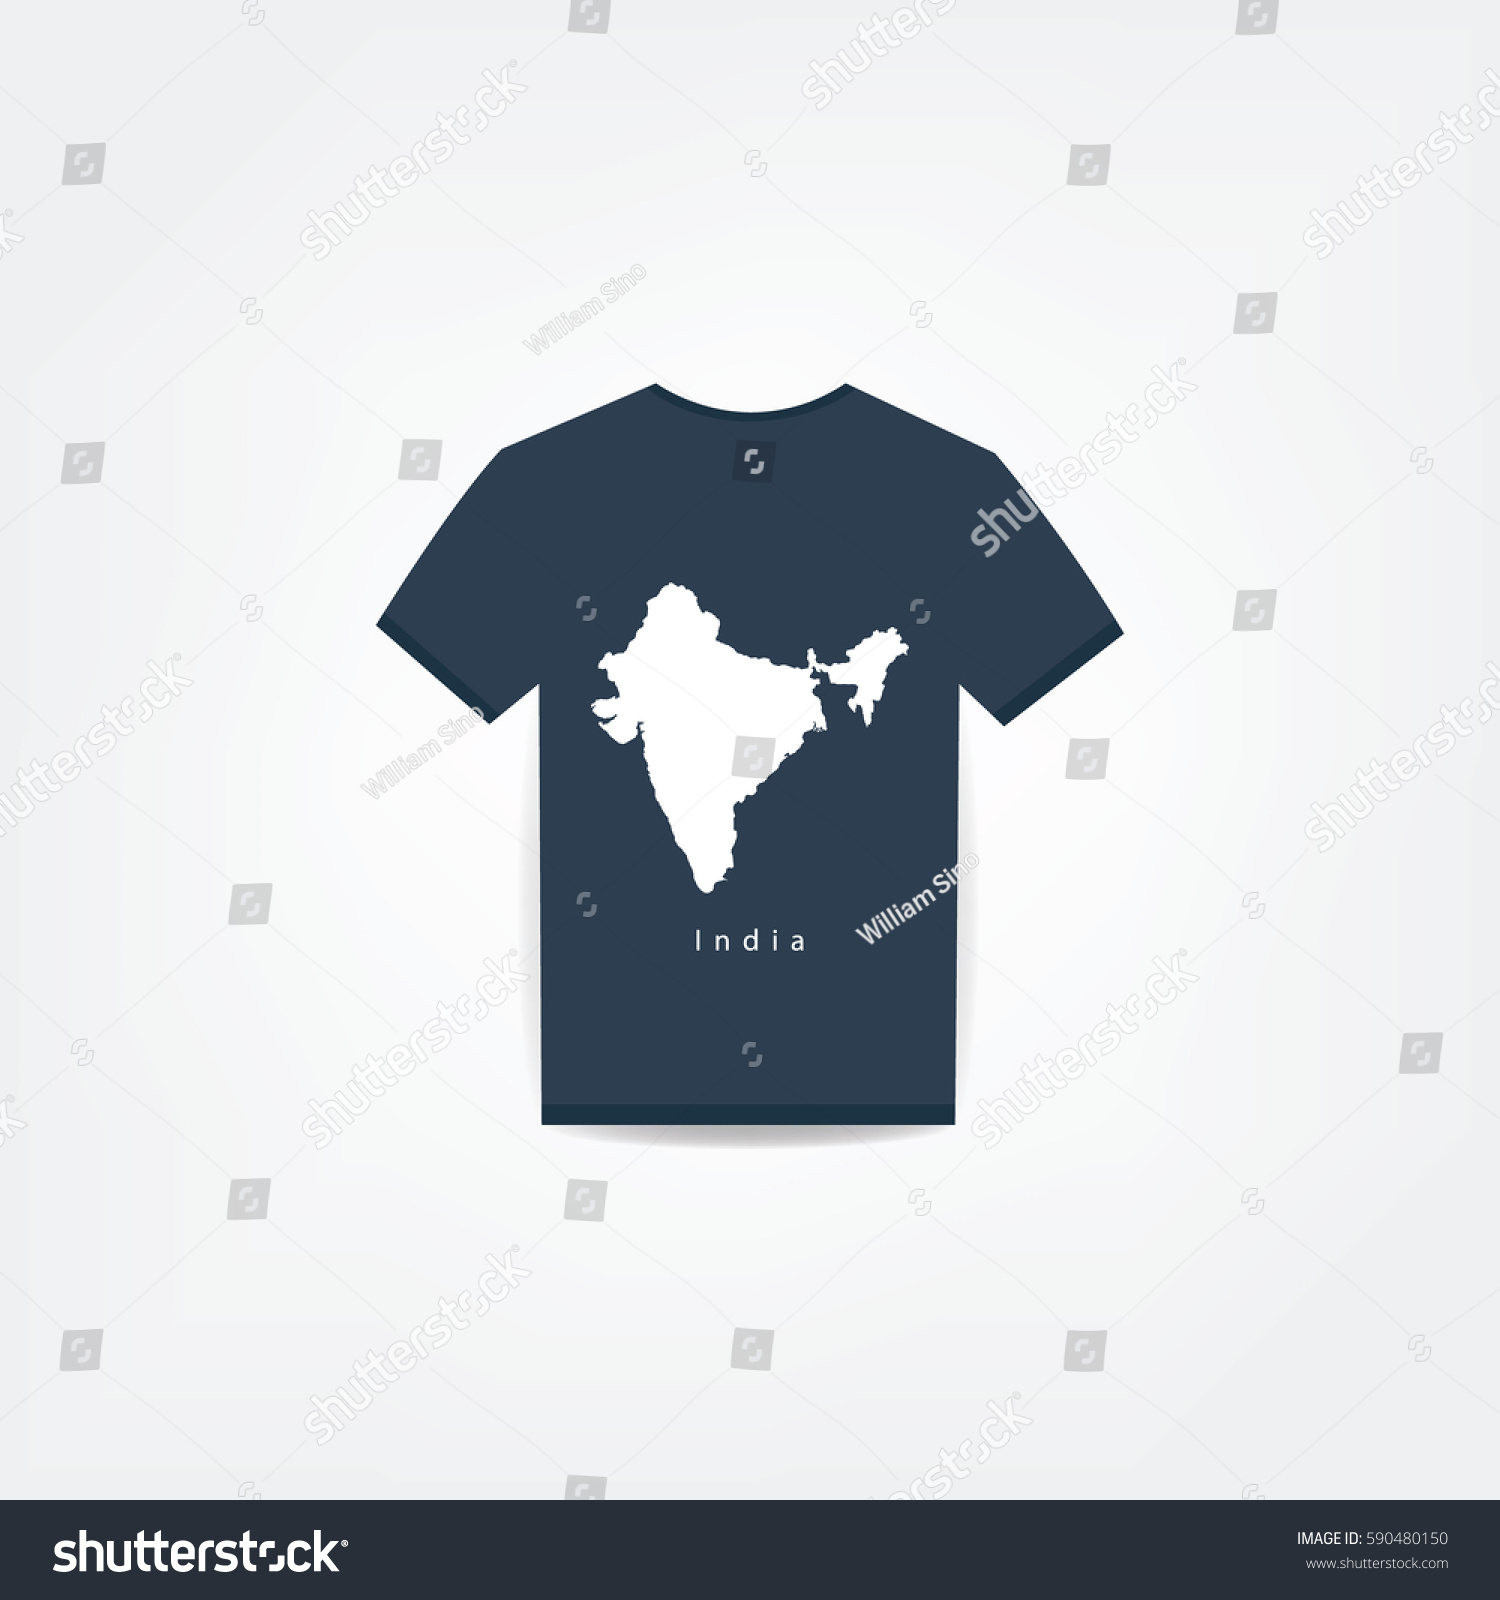 How To Start Tshirt Printing Business In India Quora - Nils